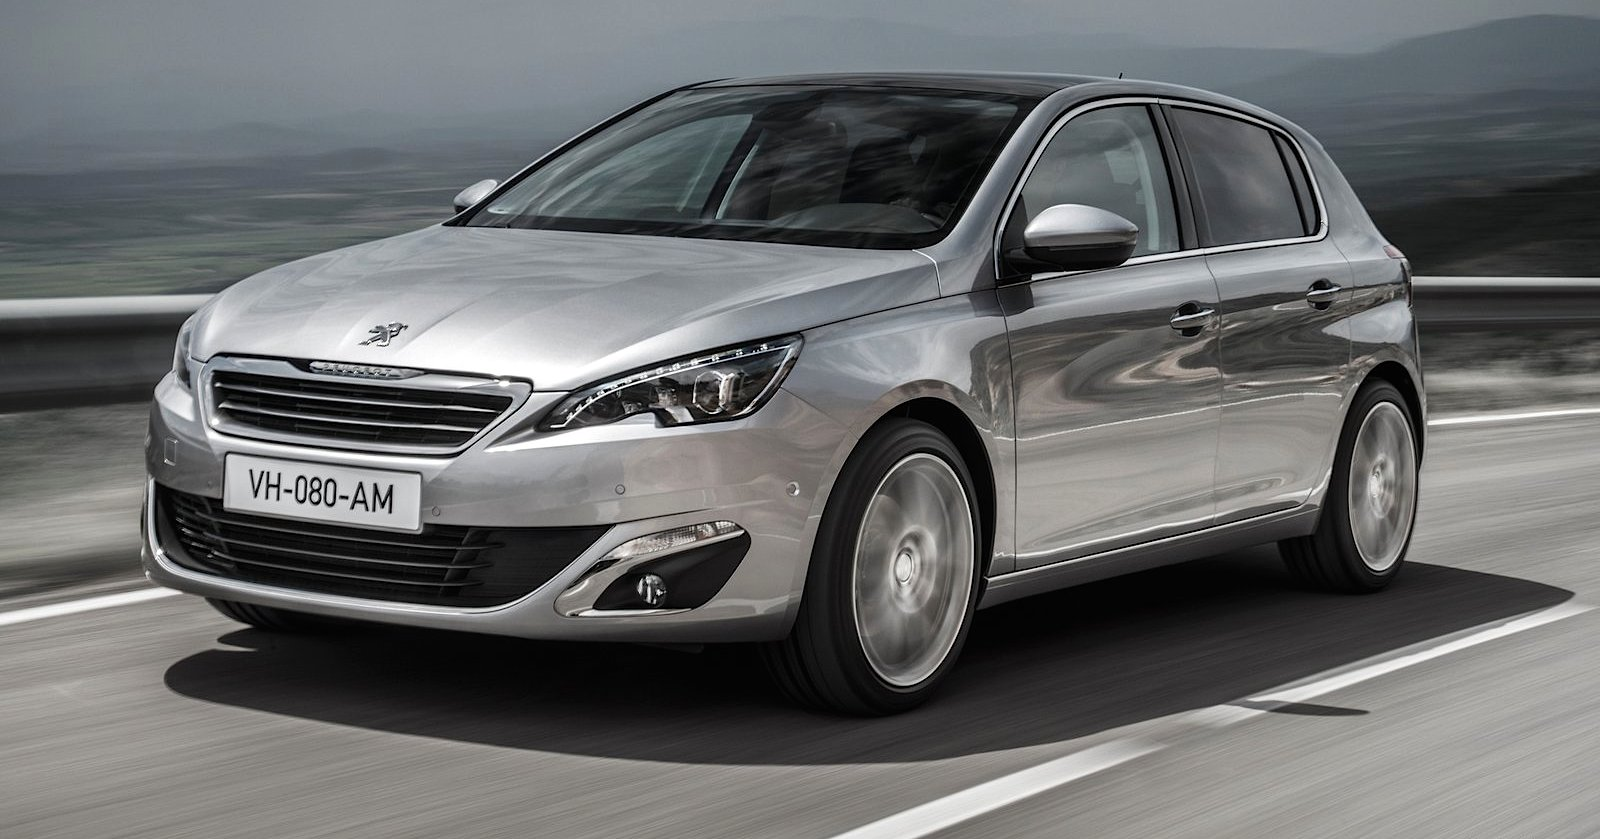 2015 peugeot 308 ii pictures information and specs auto. Black Bedroom Furniture Sets. Home Design Ideas